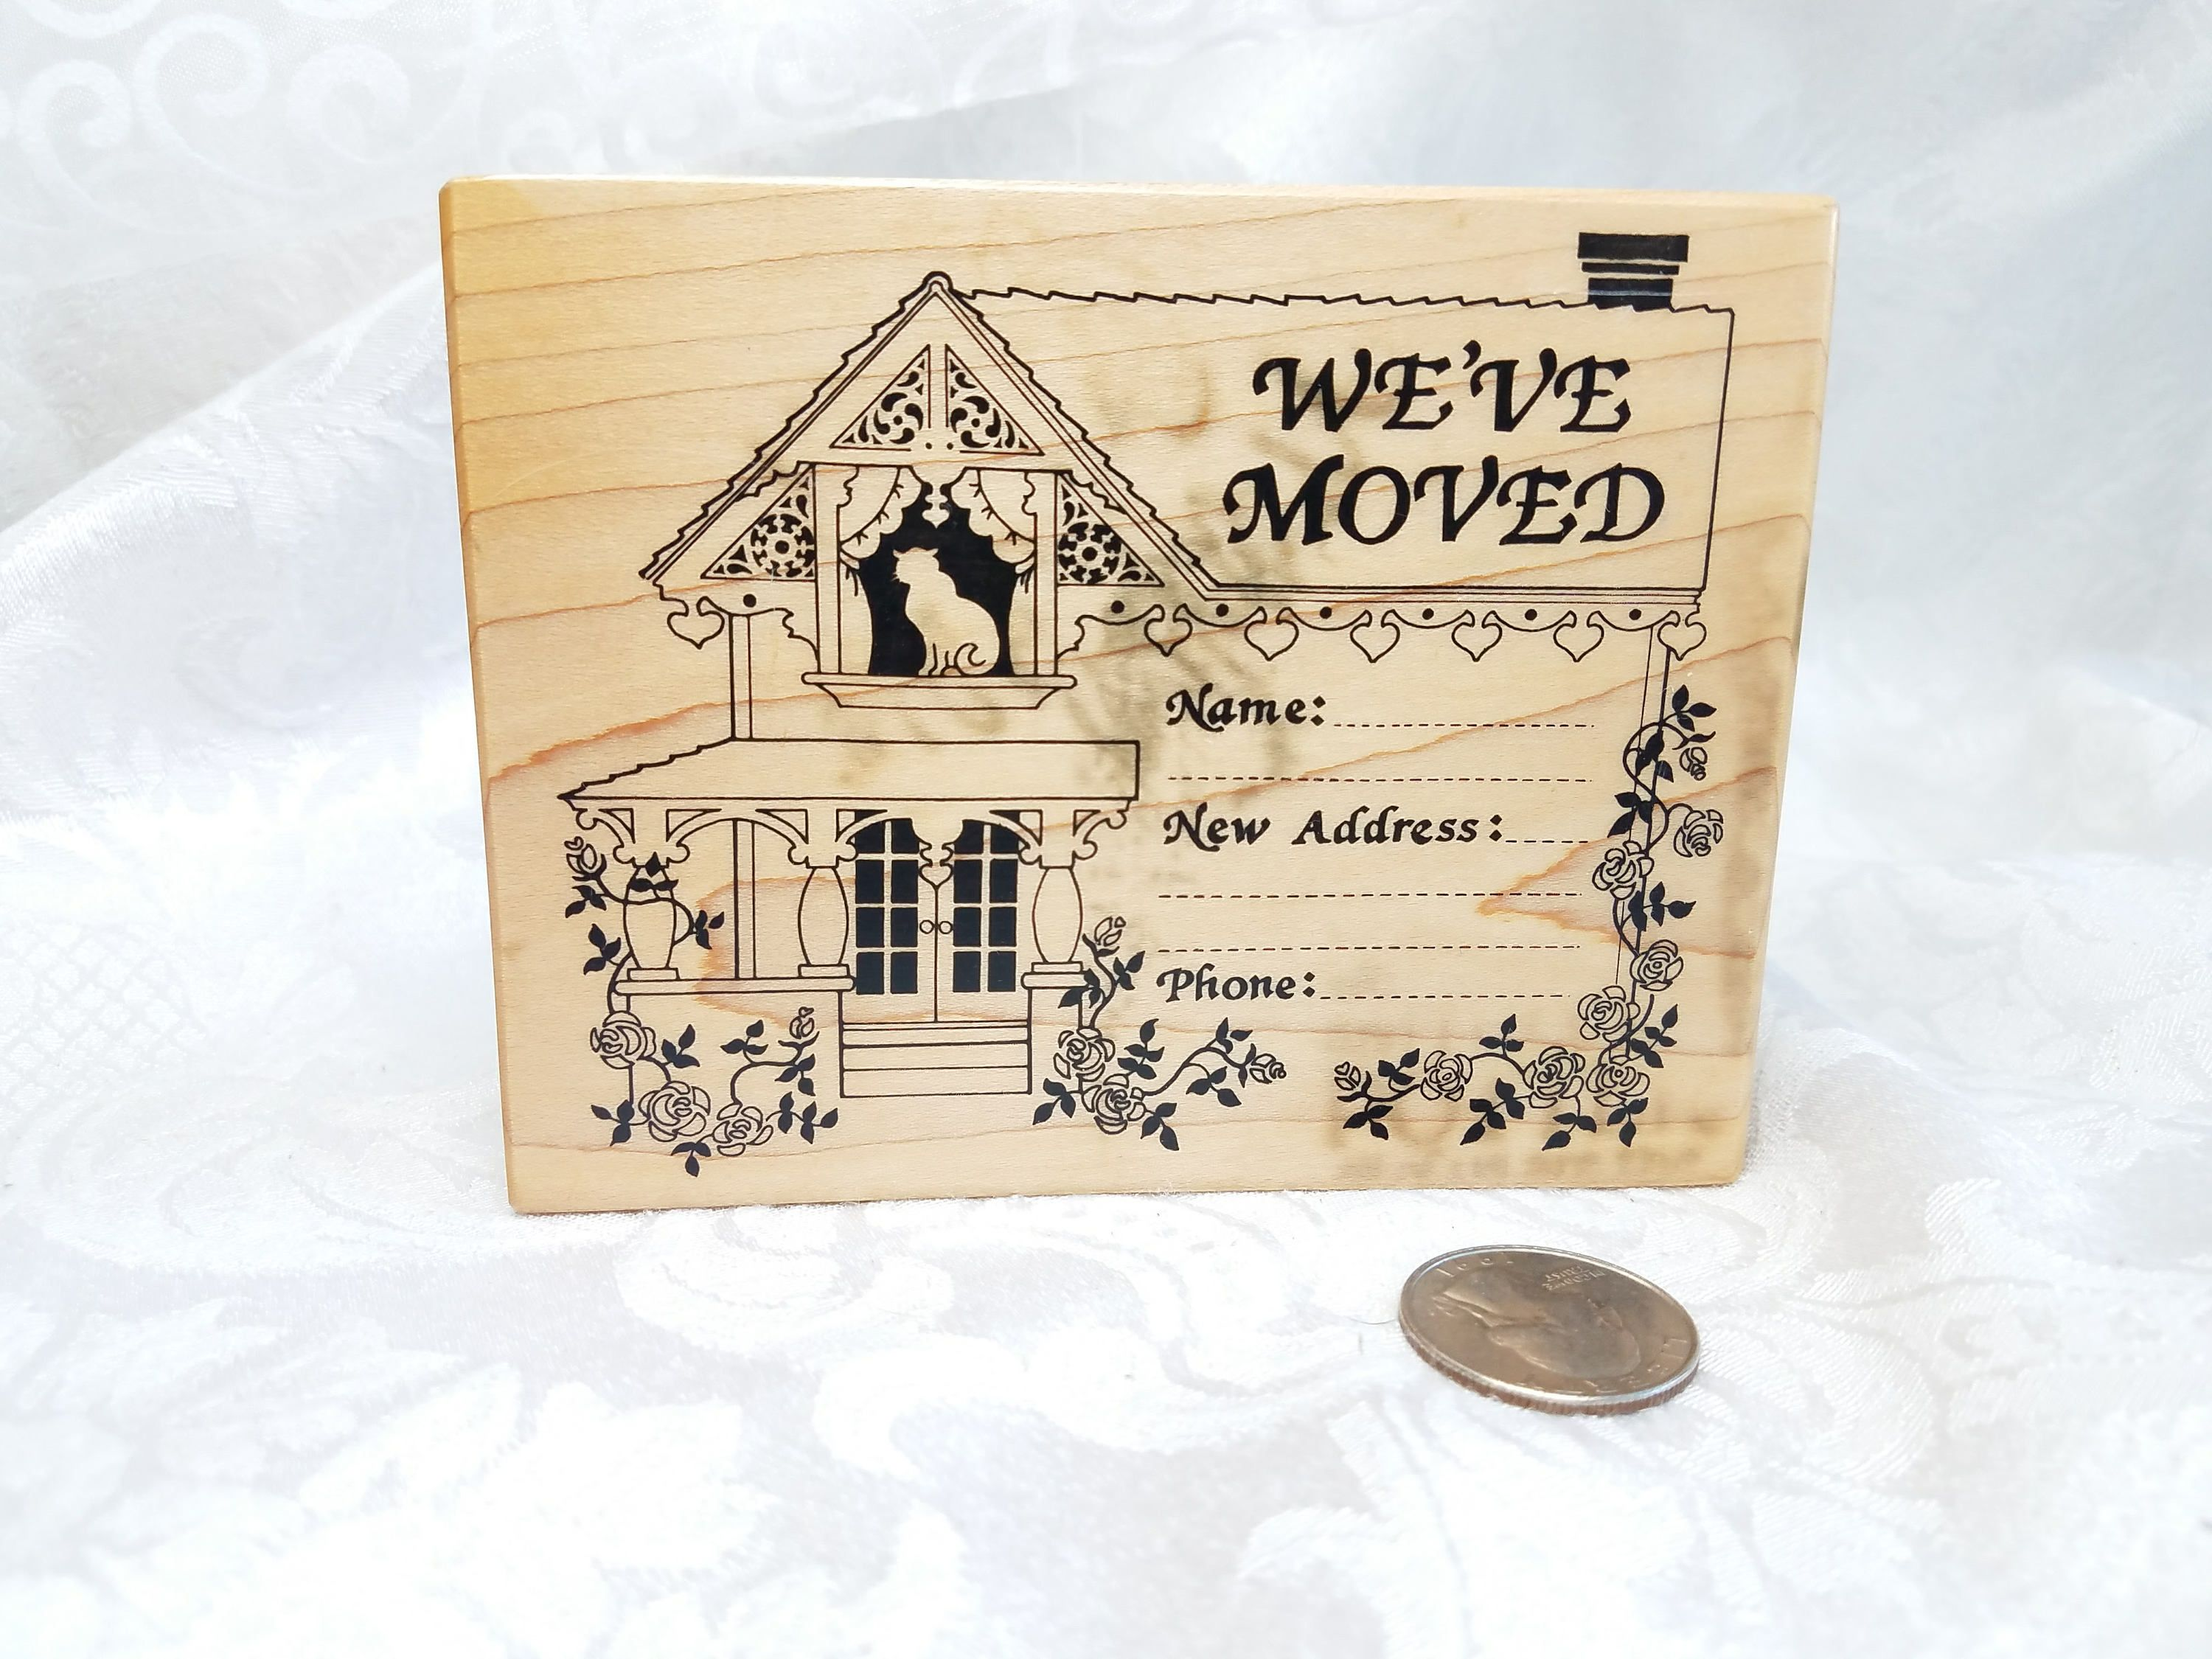 Weve Moved Rubber STamp PSX Stamp Cat In House Name Address Phone Moving Announcement Used